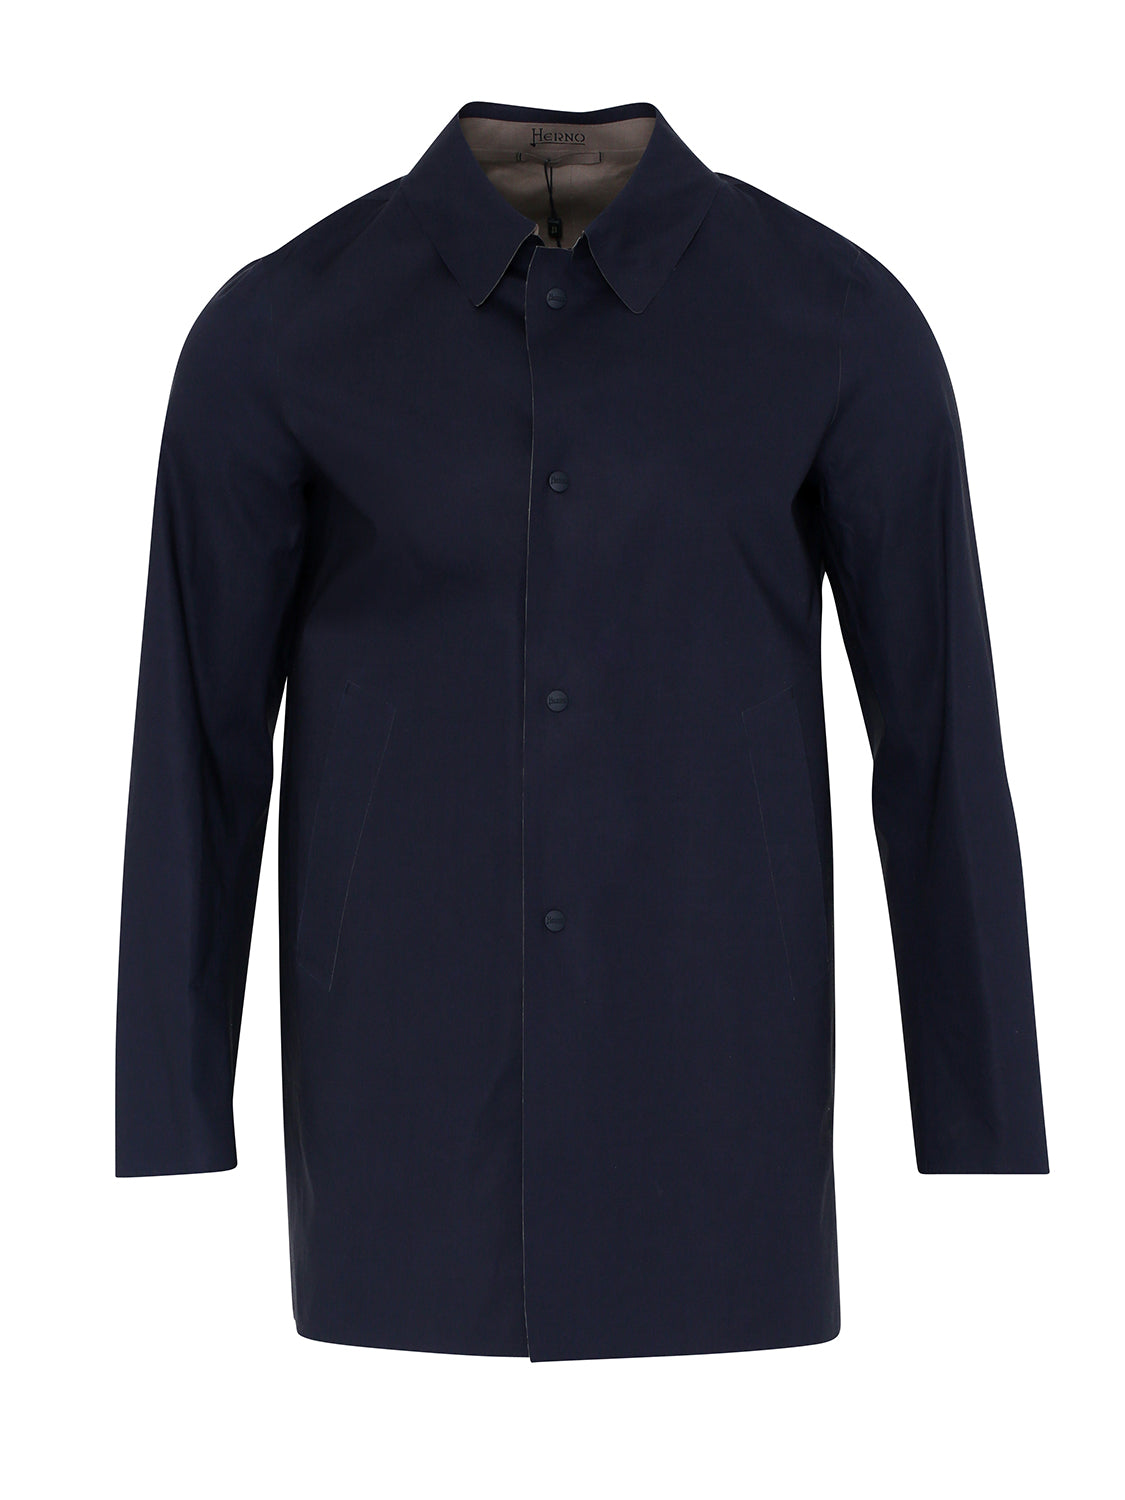 Herno Reversible Mac (Navy/ Taupe) - Union 22